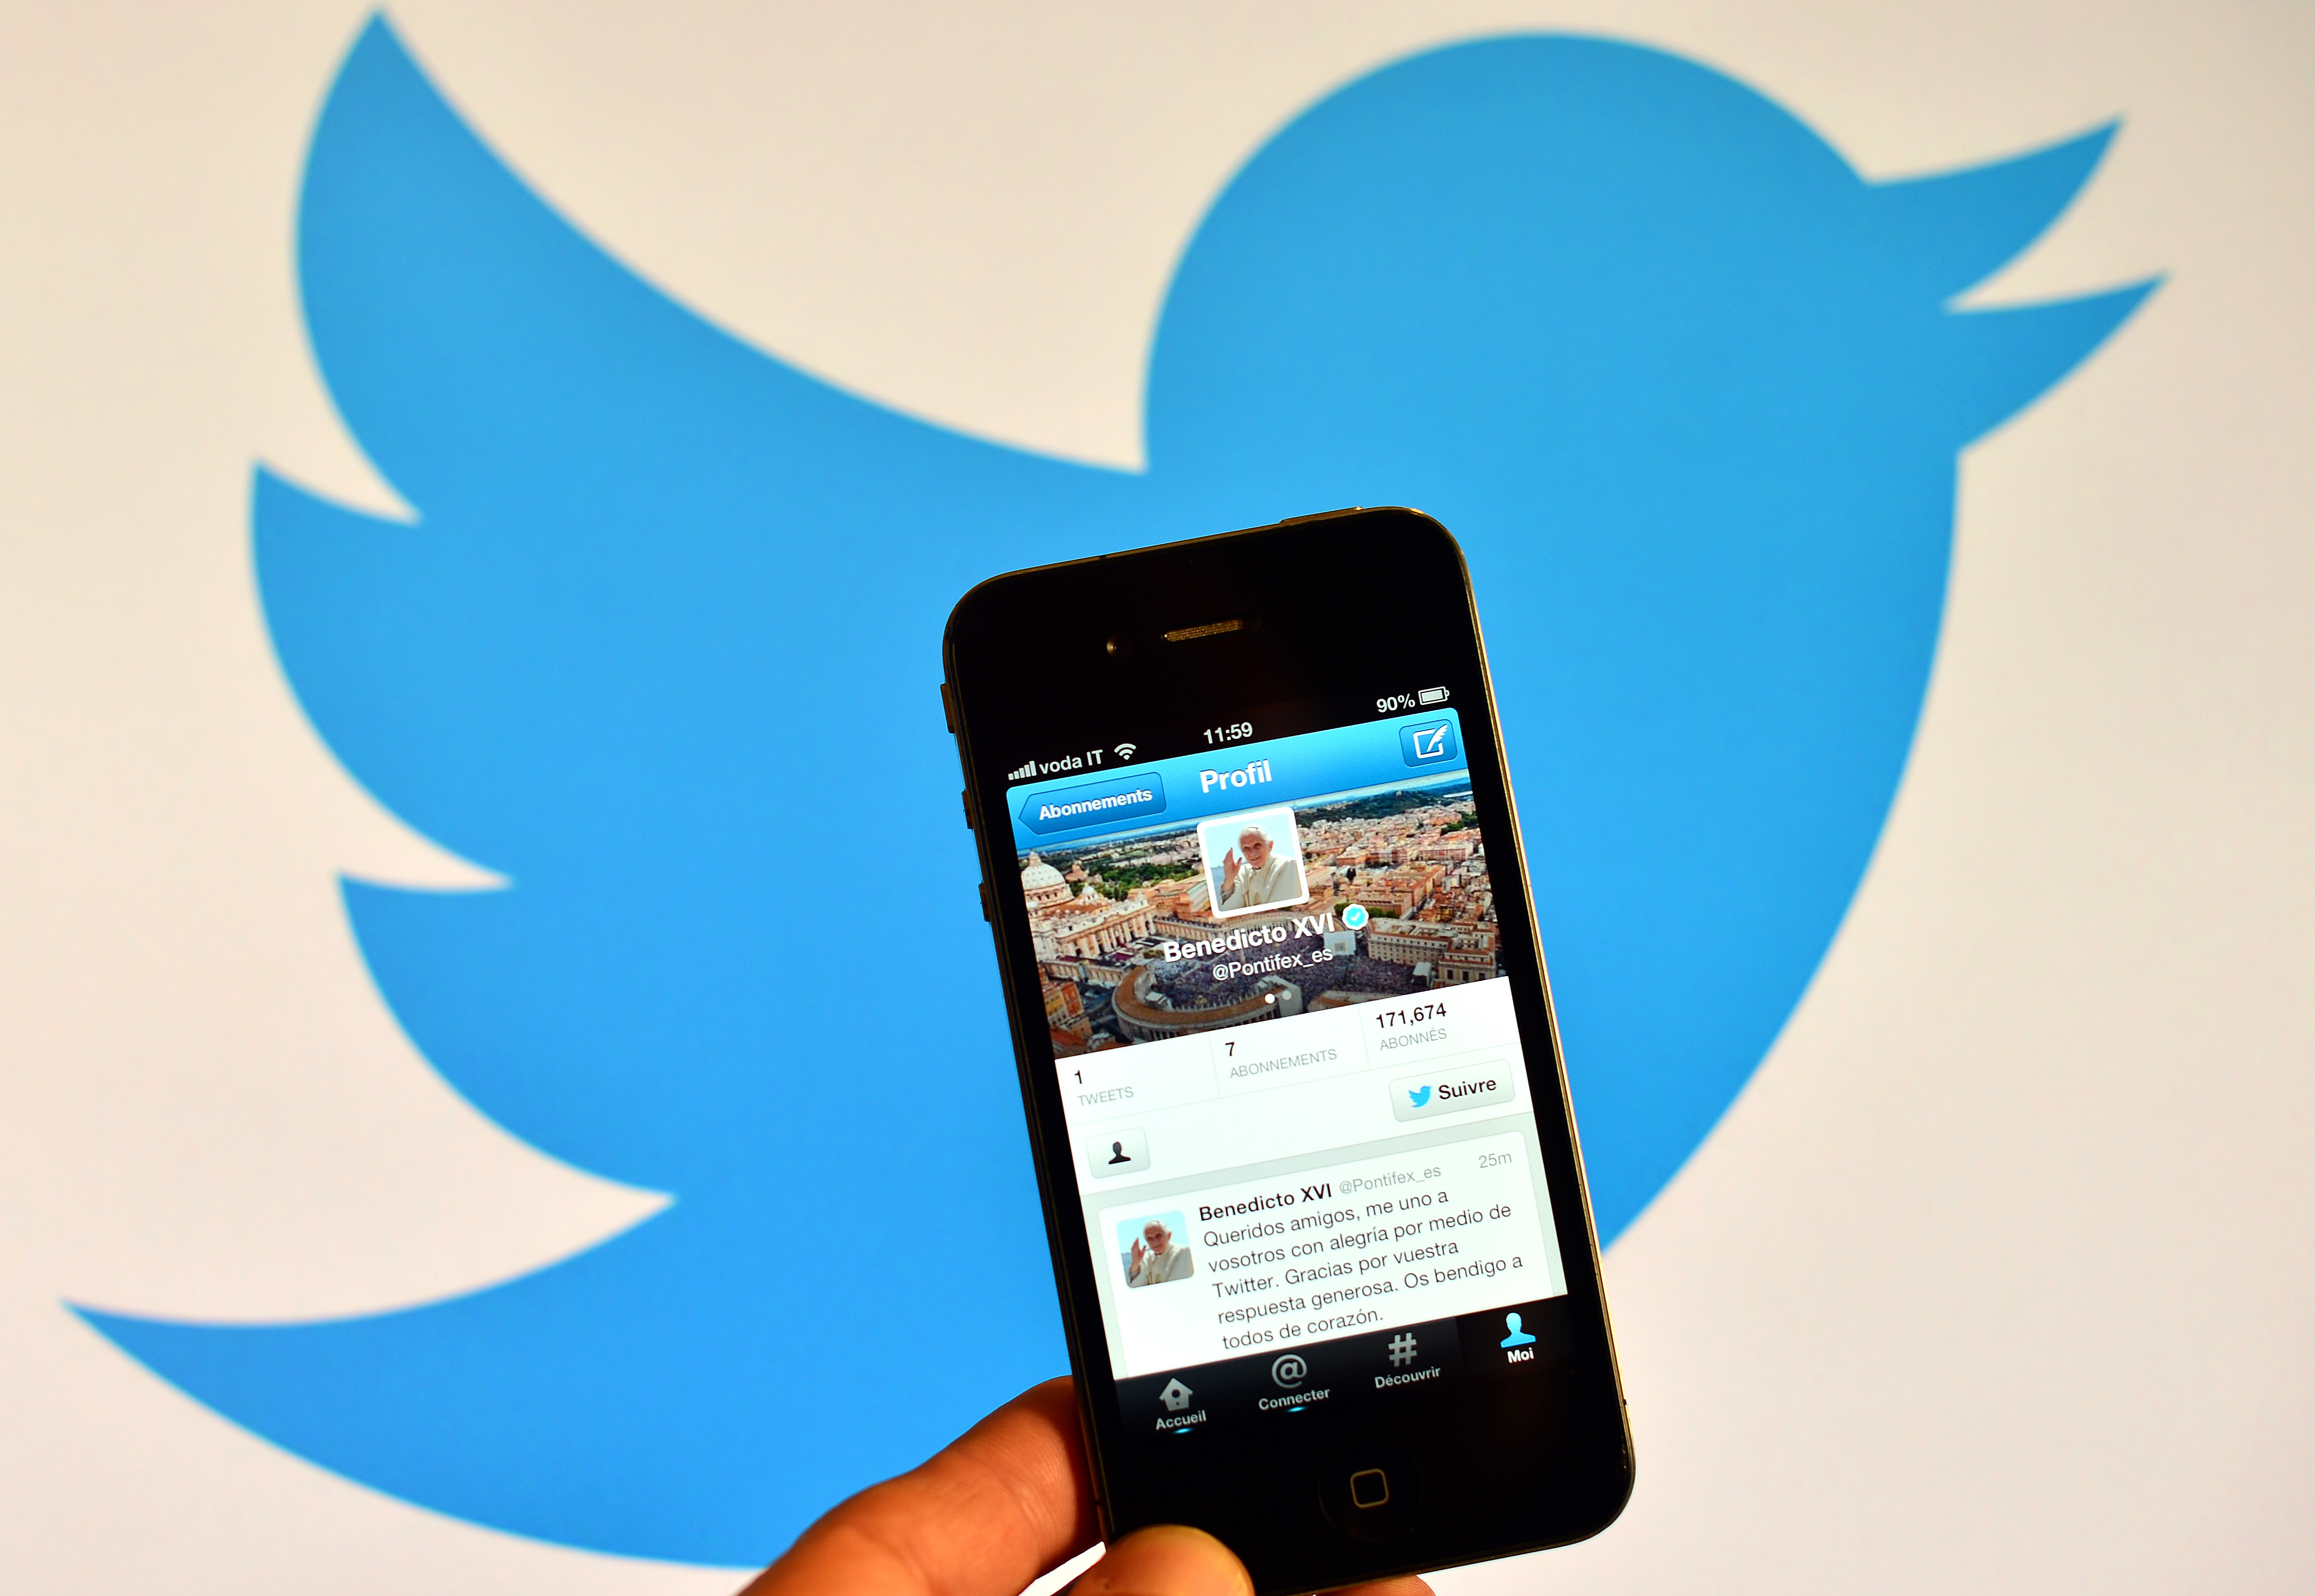 Twitter is Testing One-Tap Video Playback Across its Mobile Apps